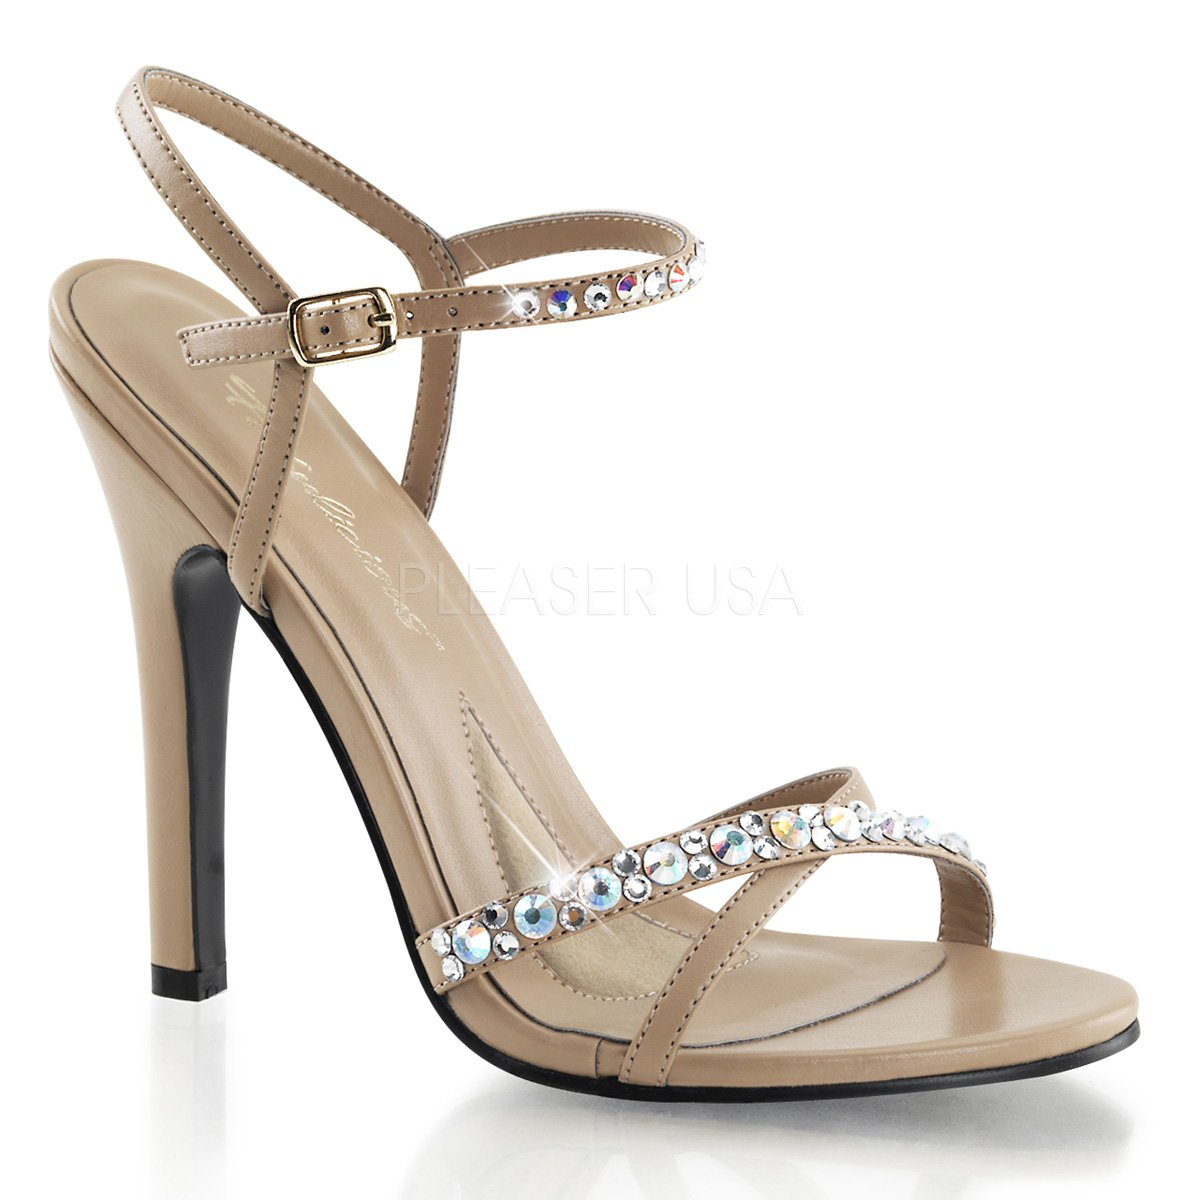 Fabulicious Melody-15 - sexy High Heels Sandaletten Taupe, mit Strass, Taupe, Sandaletten 35-41 Taupe Pu 48686a